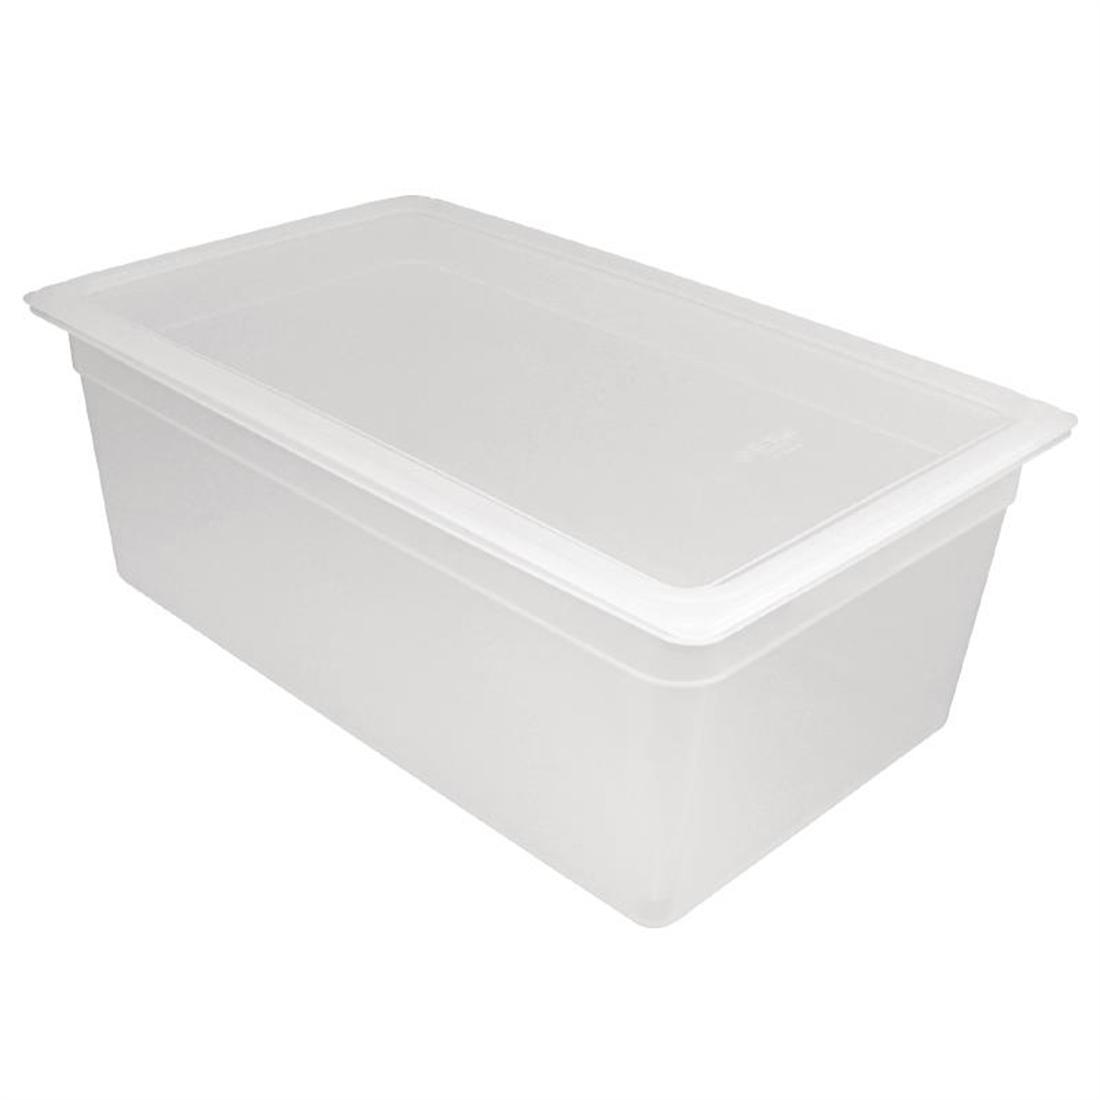 Vogue Polypropylene 1/1 Gastronorm Container with Lid 200mm - Pack of 2 - GJ513